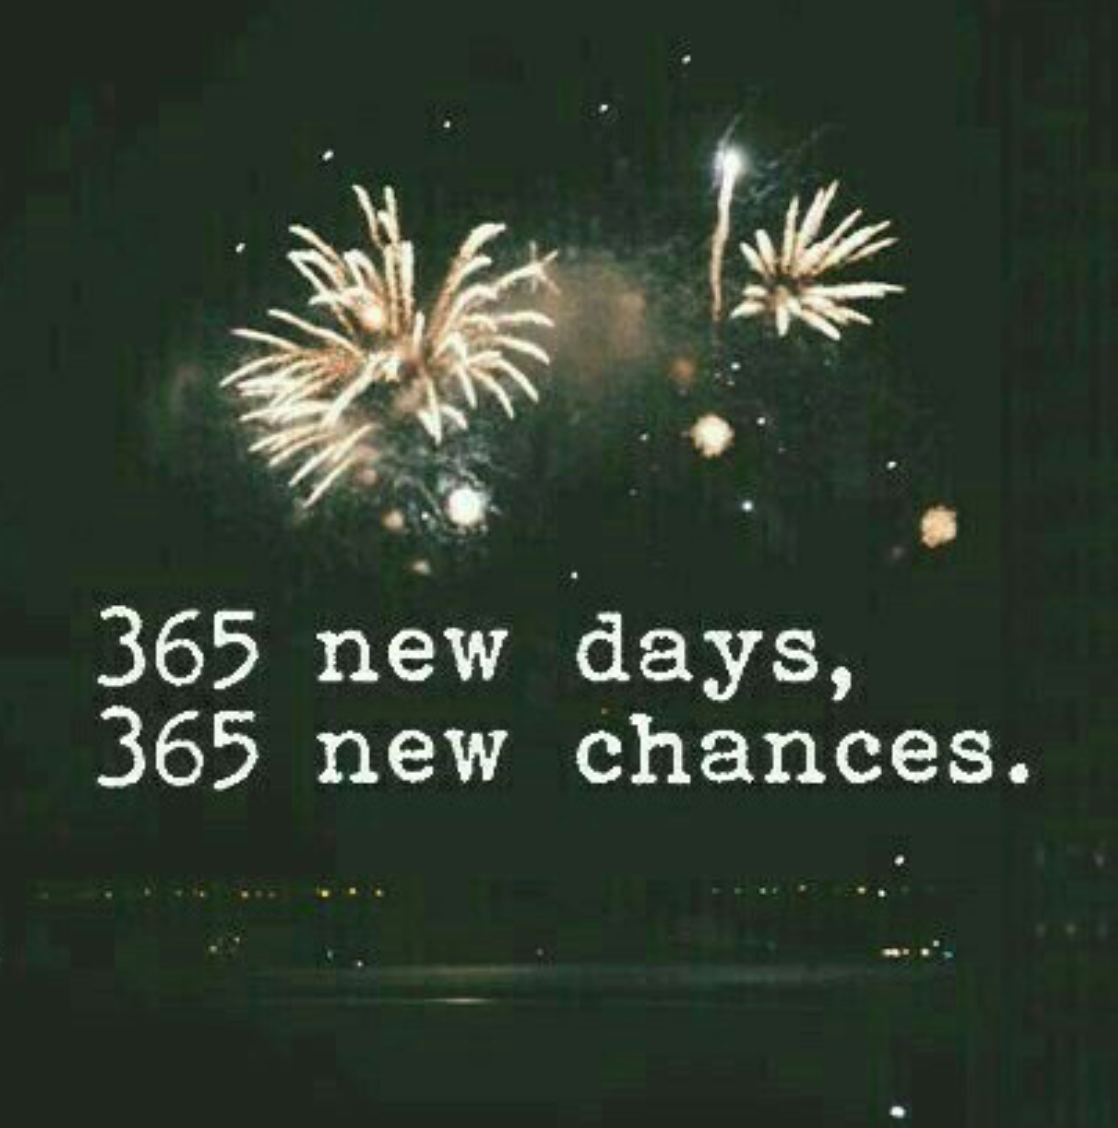 Happy New Year Wallpaper With Quotes: 365 Days Of Change On We Heart It